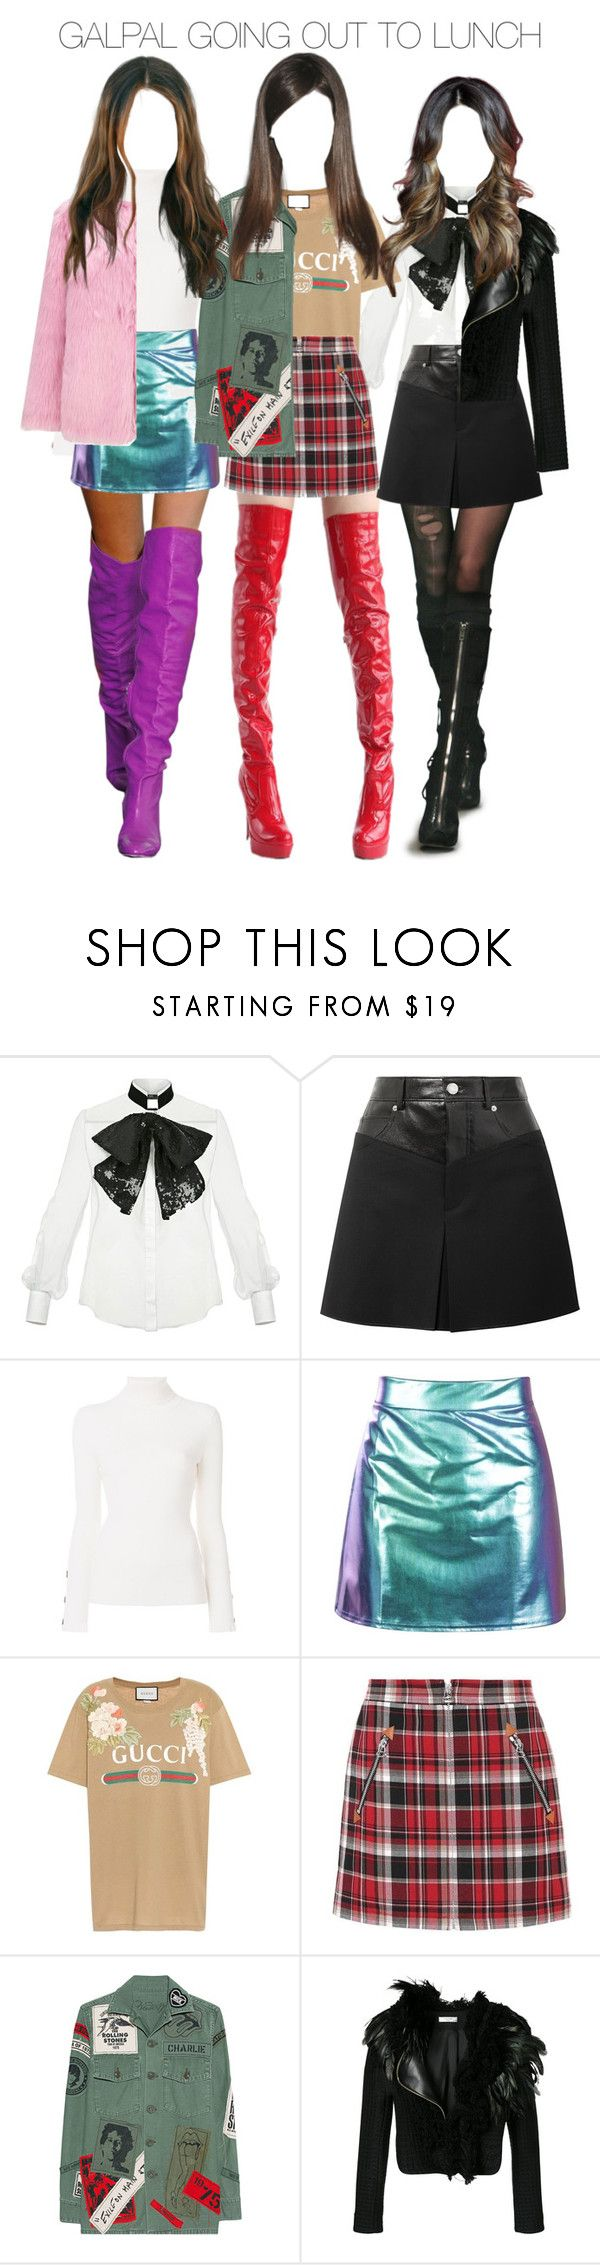 """""""'-GAL PAL GIRLS WENT OUT TO LUNCH TOGETHER-'"""" by petal-entertainment ❤ liked on Polyvore featuring Elisabetta Franchi, Helmut Lang, See by Chloé, Gucci, rag & bone, MadeWorn, Lanvin and Miss Selfridge"""